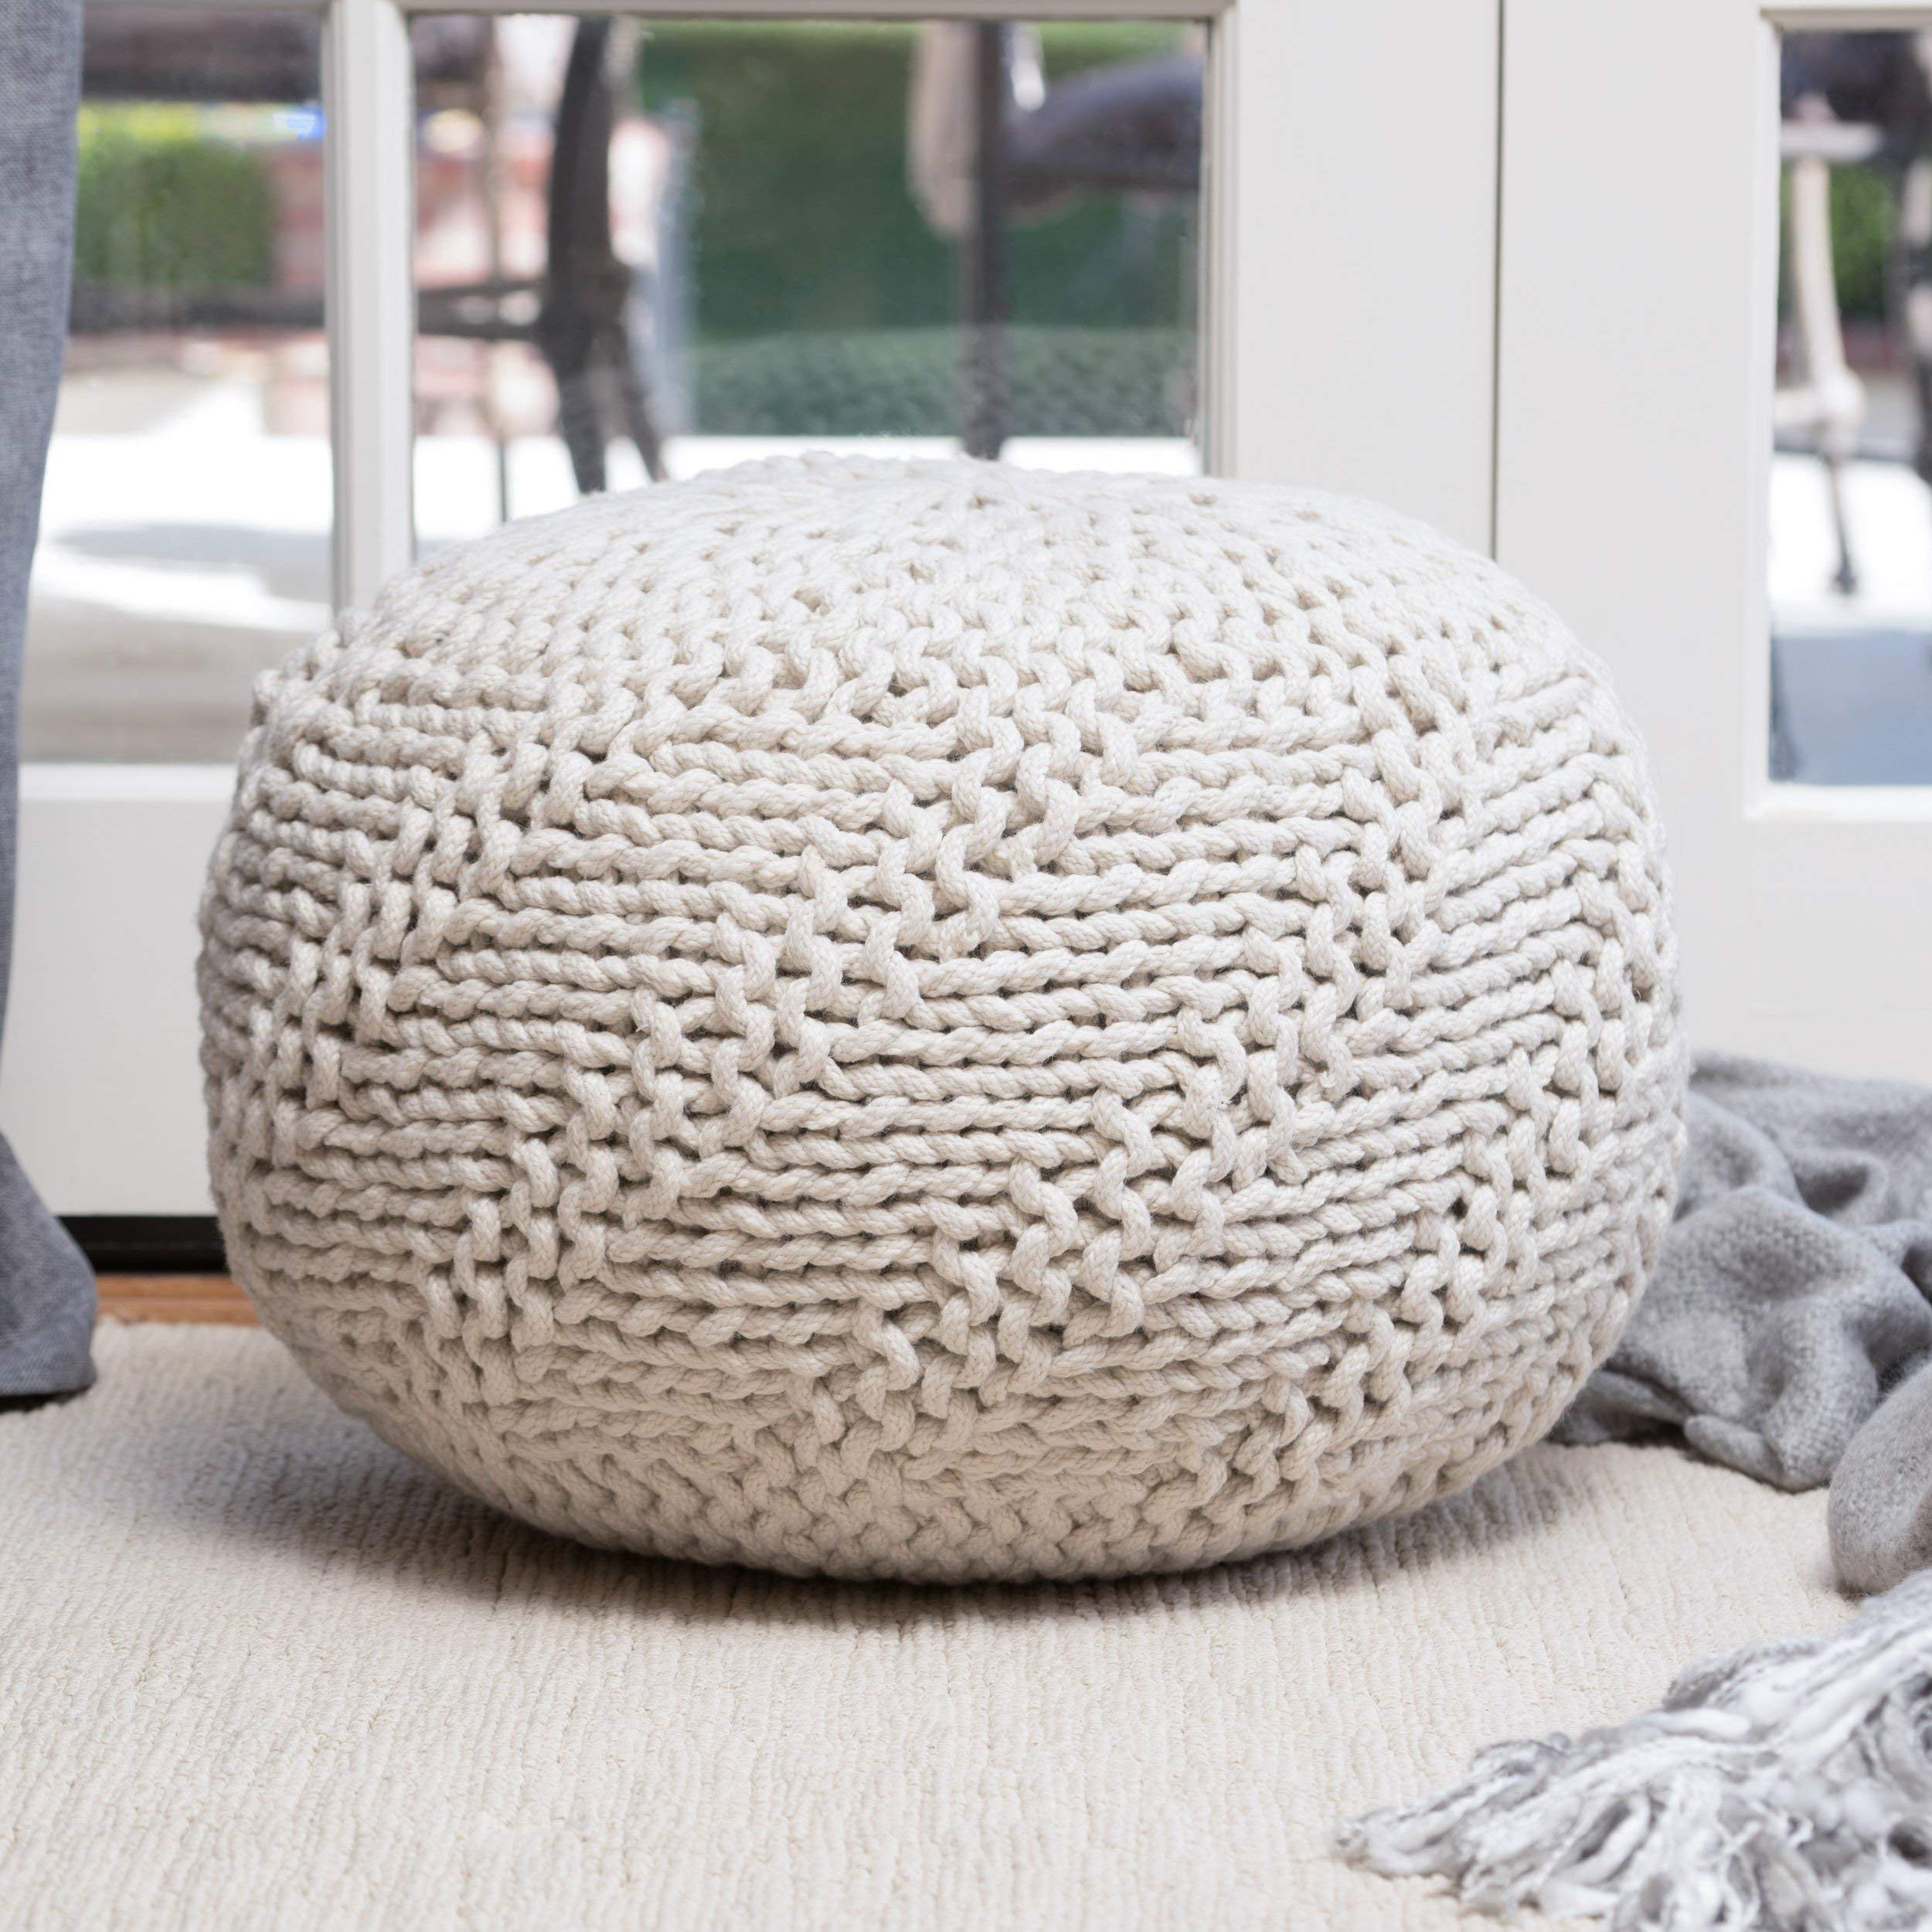 MISC Rope Ottoman, Ivory Off White Weaved Fabric Knit Rows Round Pouf Textured Footstool Beads Fill, Durable Knitted Circle Footrest Stool for Indoor Outdoor Sitting Area, 14'' Circular Shape